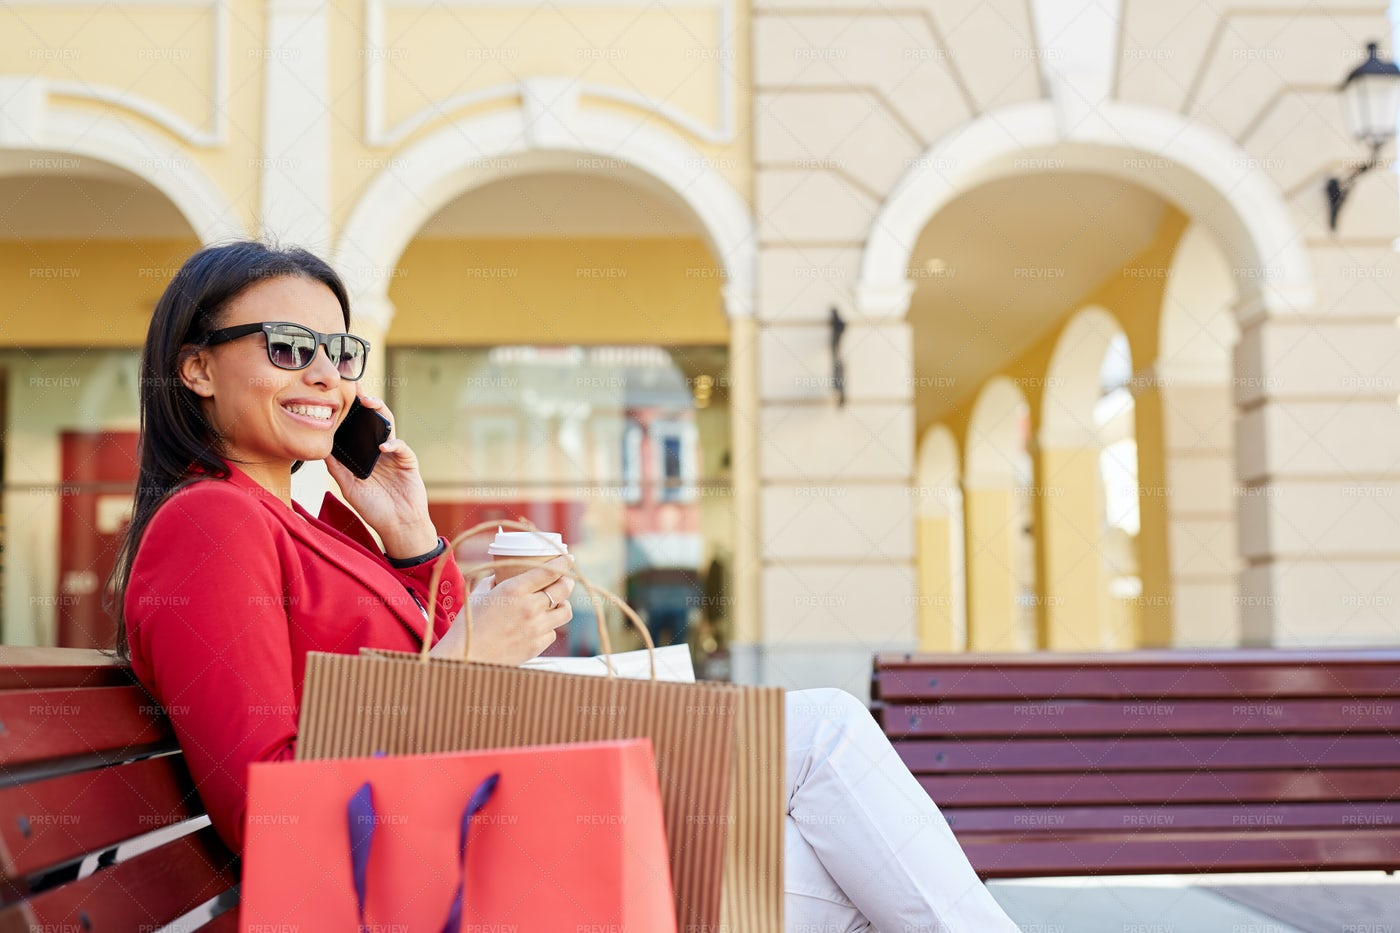 Sharing News With Friend On Phone: Stock Photos